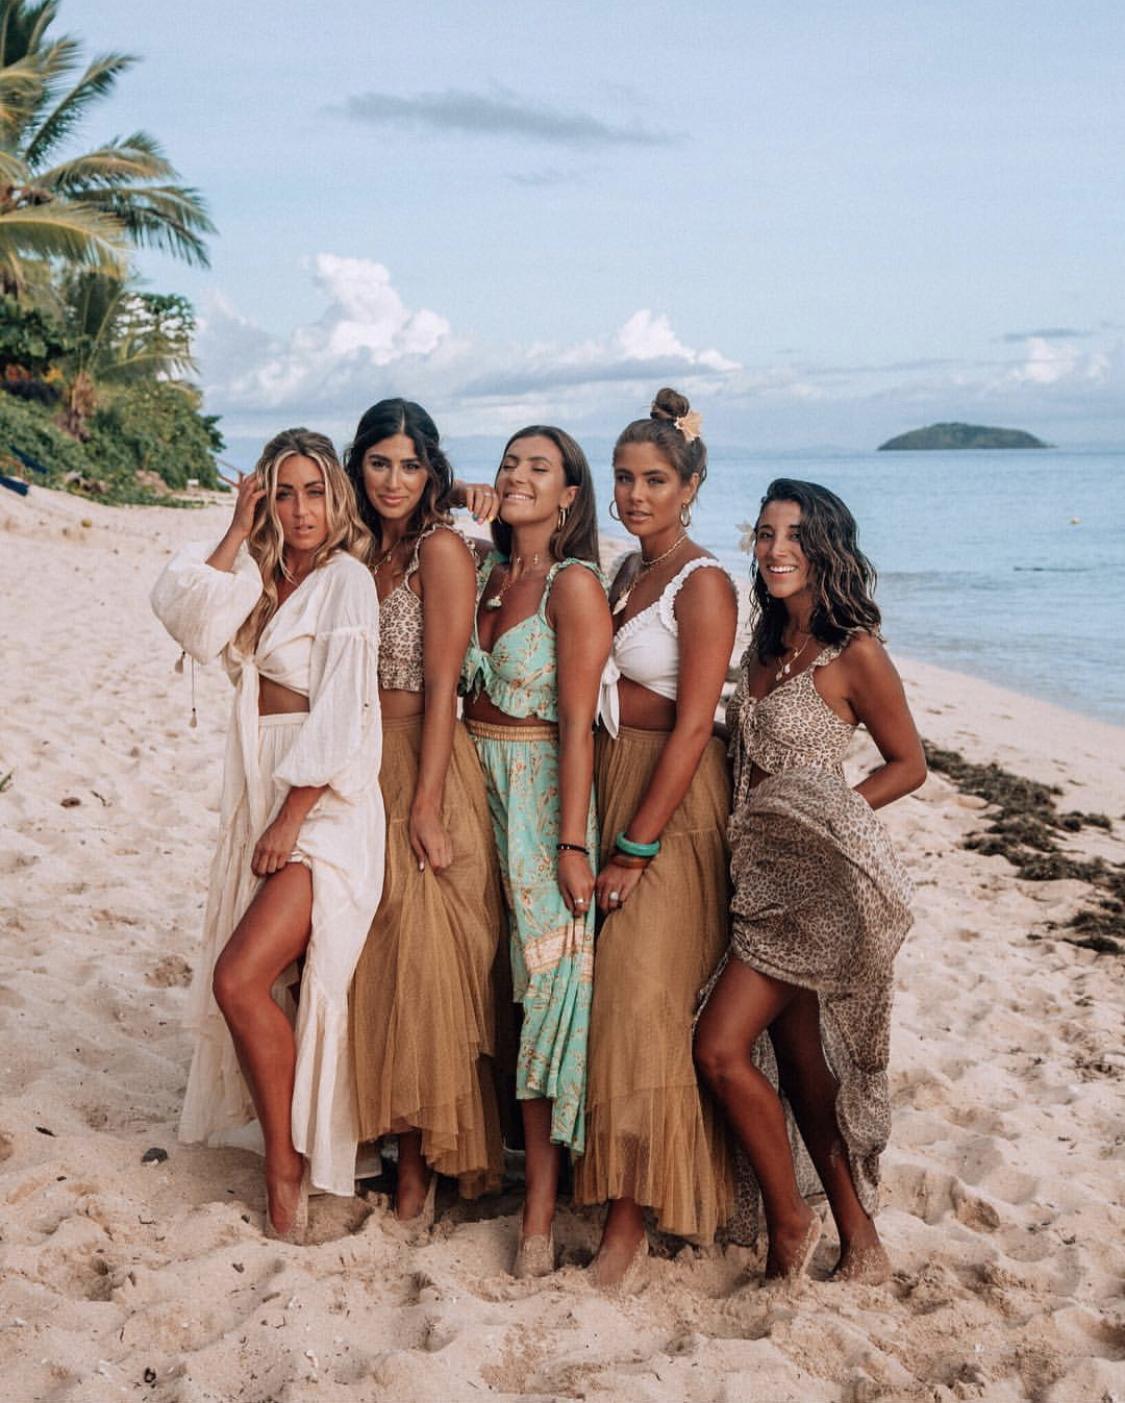 A group of travel influencers pose on the beach in Fiji working on a brand campaign